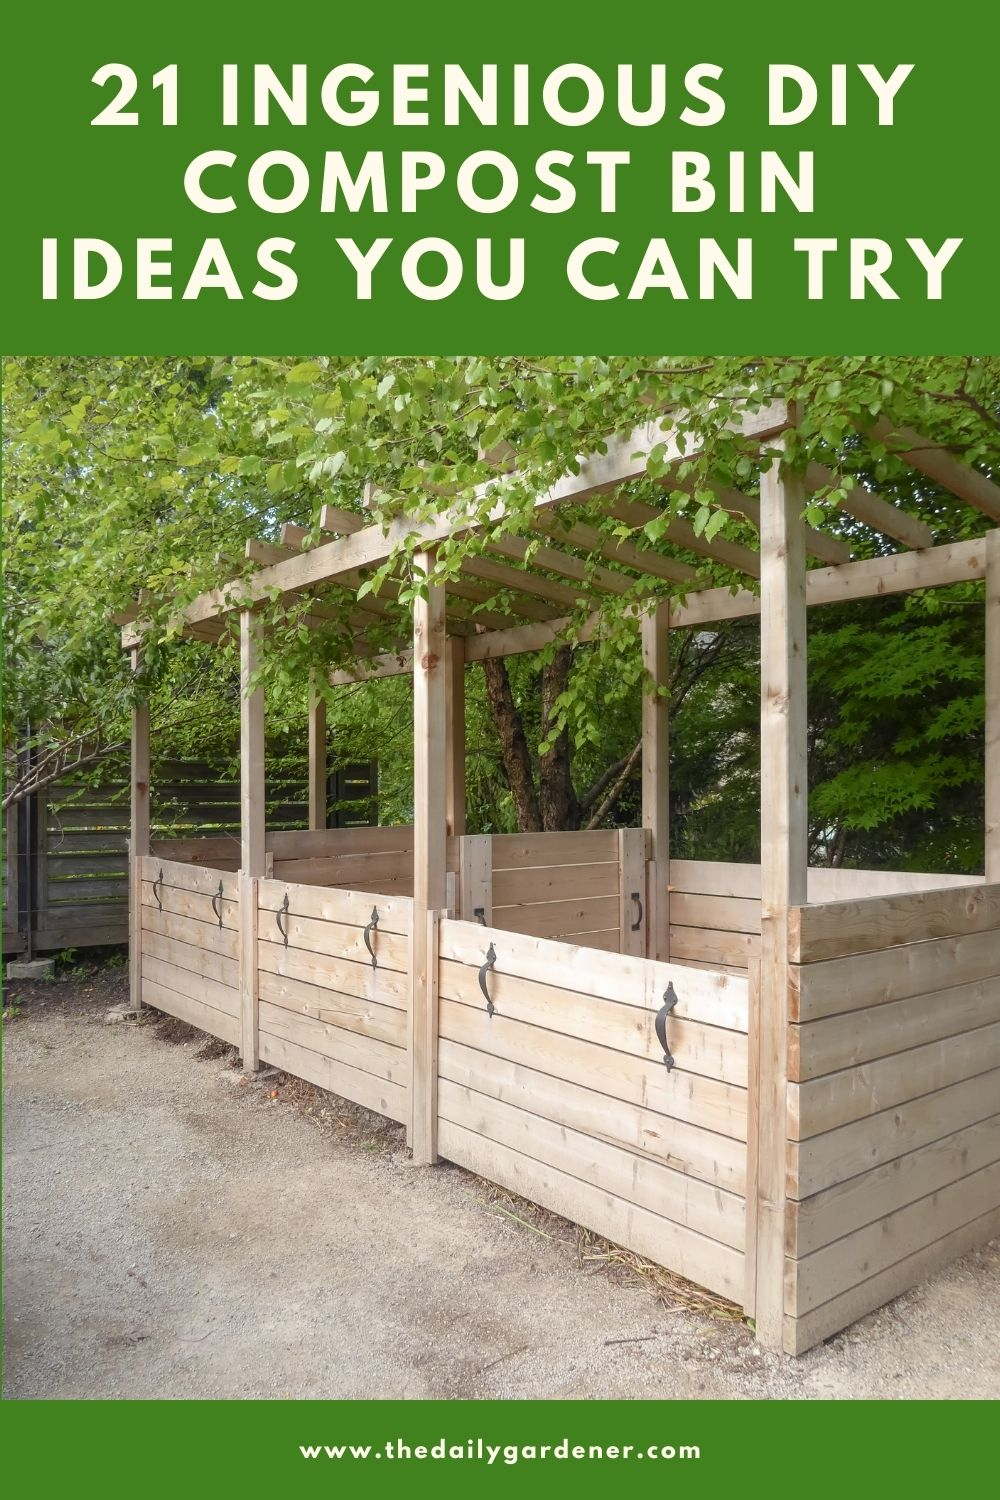 21 Ingenious DIY Compost Bin Ideas You can Try 1